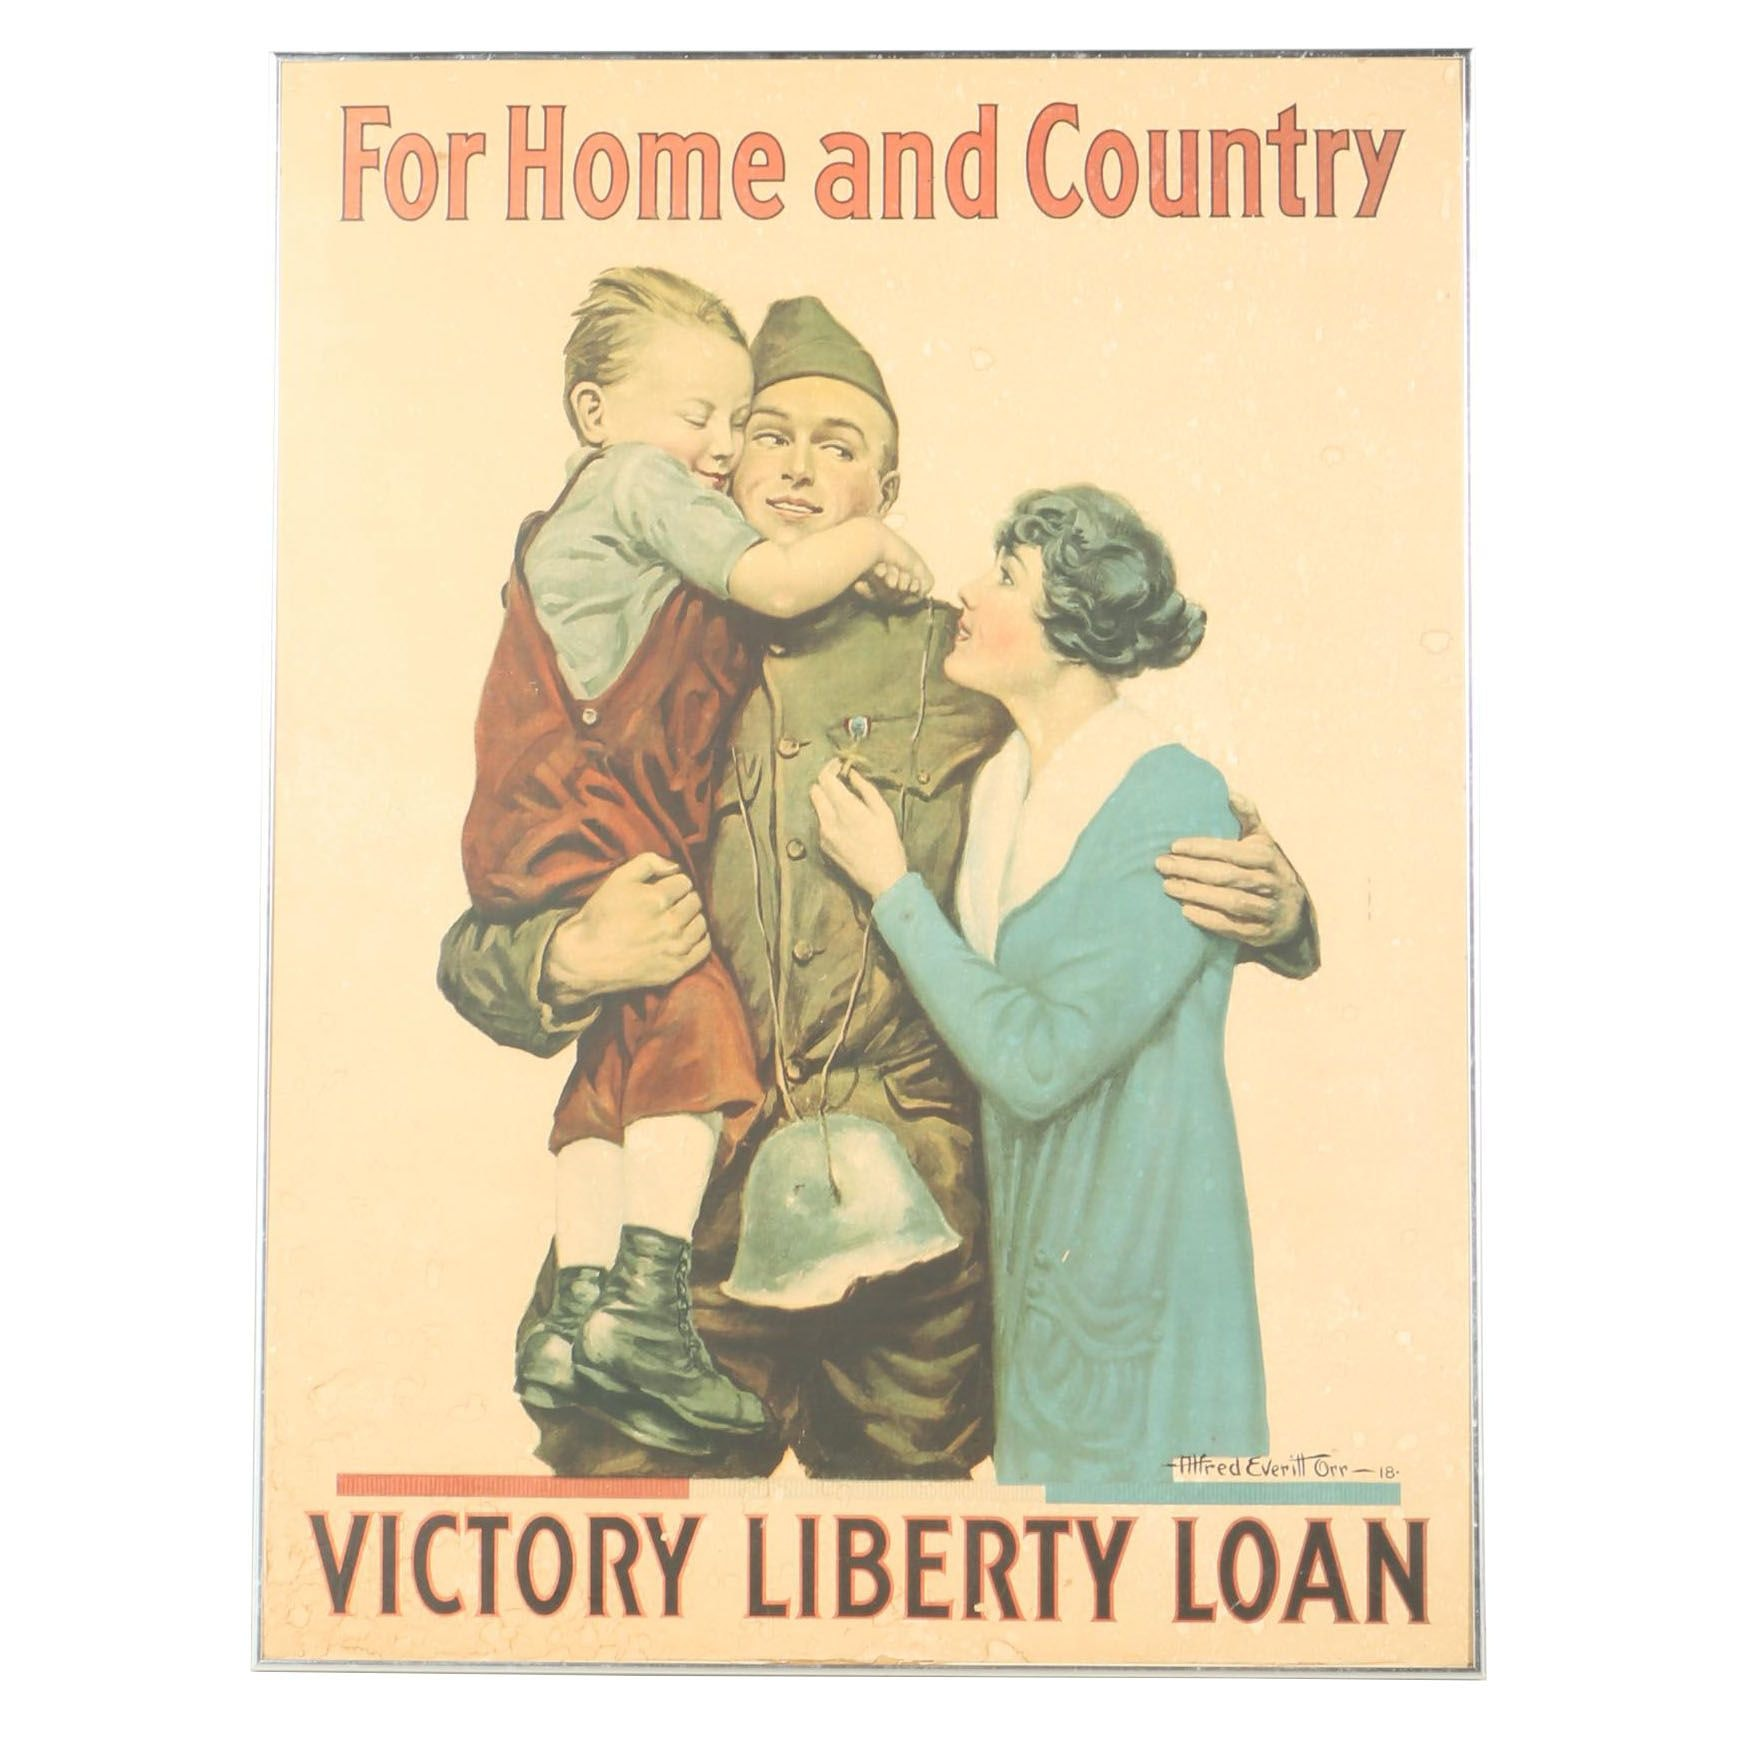 WWI American Propaganda Poster for Victory Liberty Loan